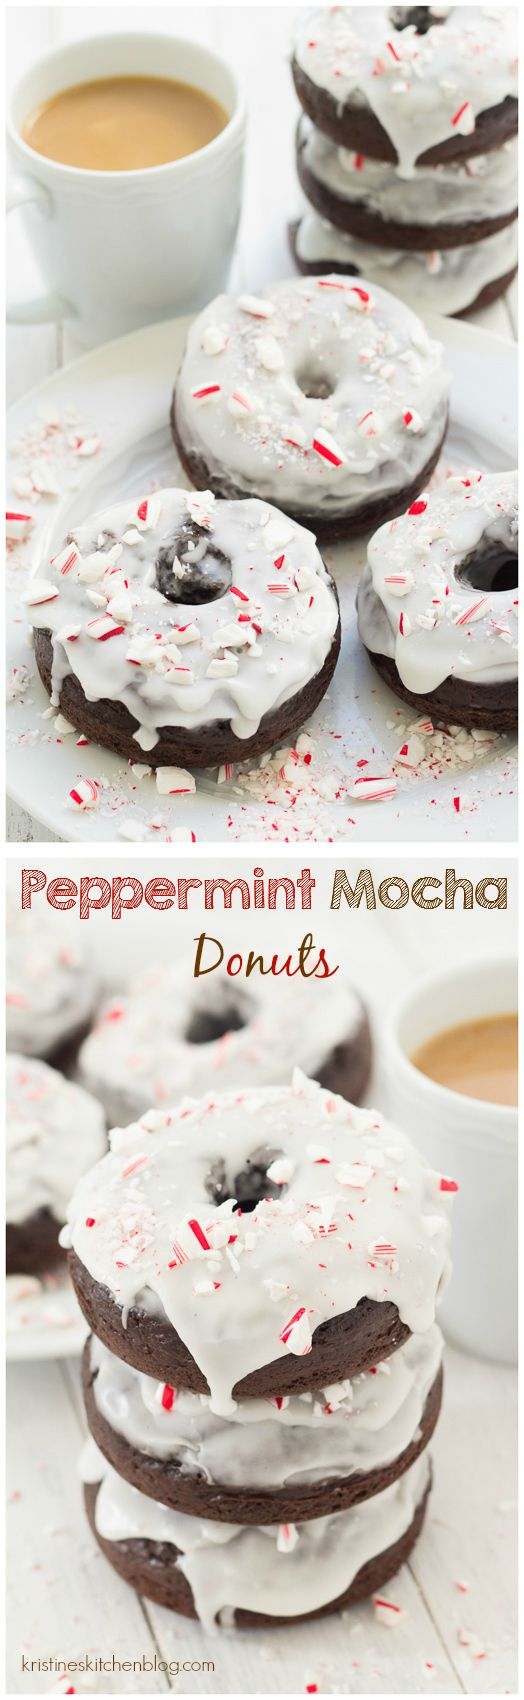 Peppermint Mocha Donuts. Healthier baked donuts with chocolate, coffee, and peppermint!   Kristine's Kitchen